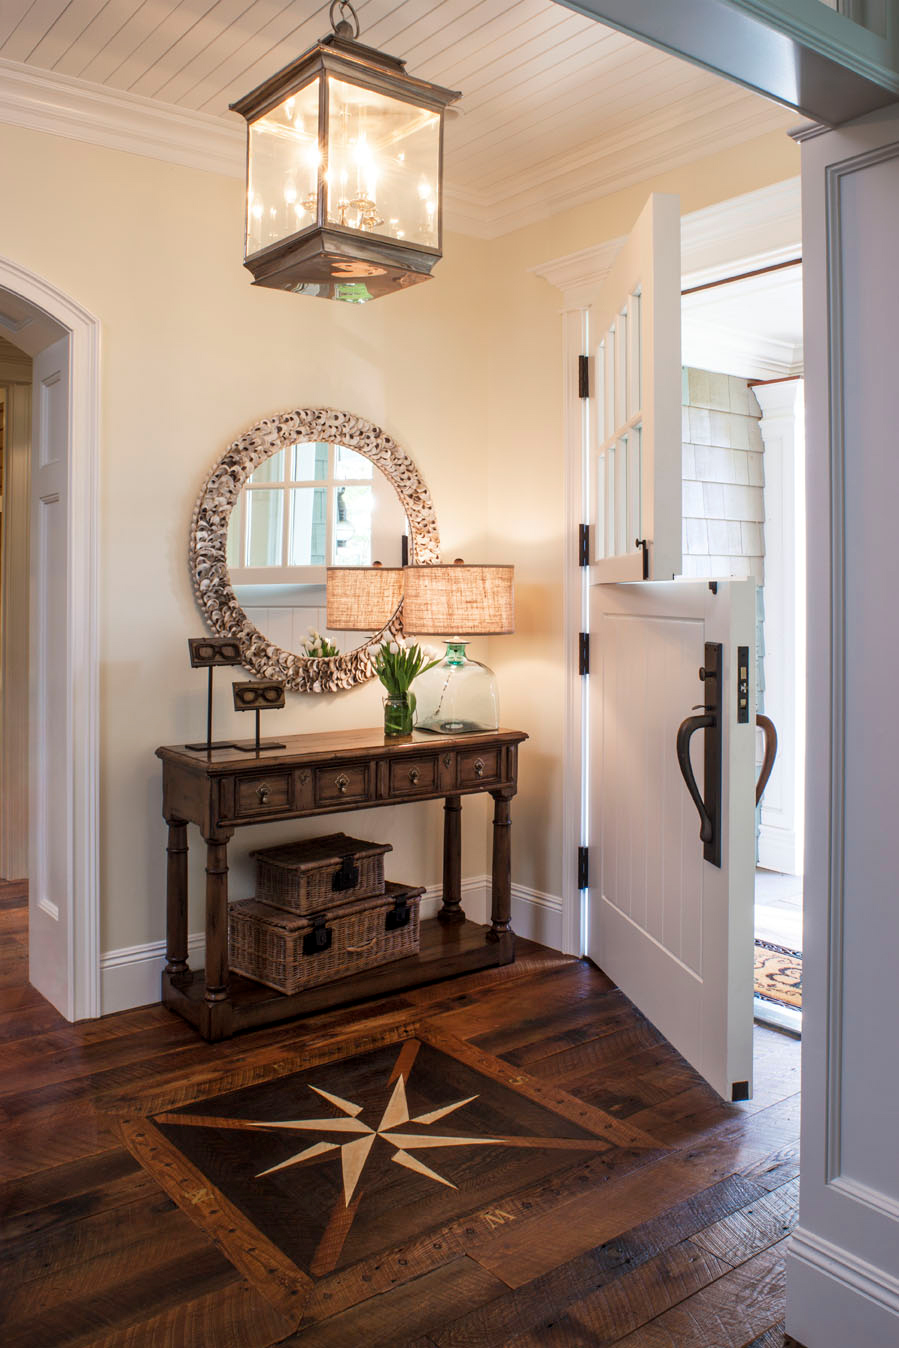 Rustic Foyer Ideas : Best rustic entryway decorating ideas and designs for